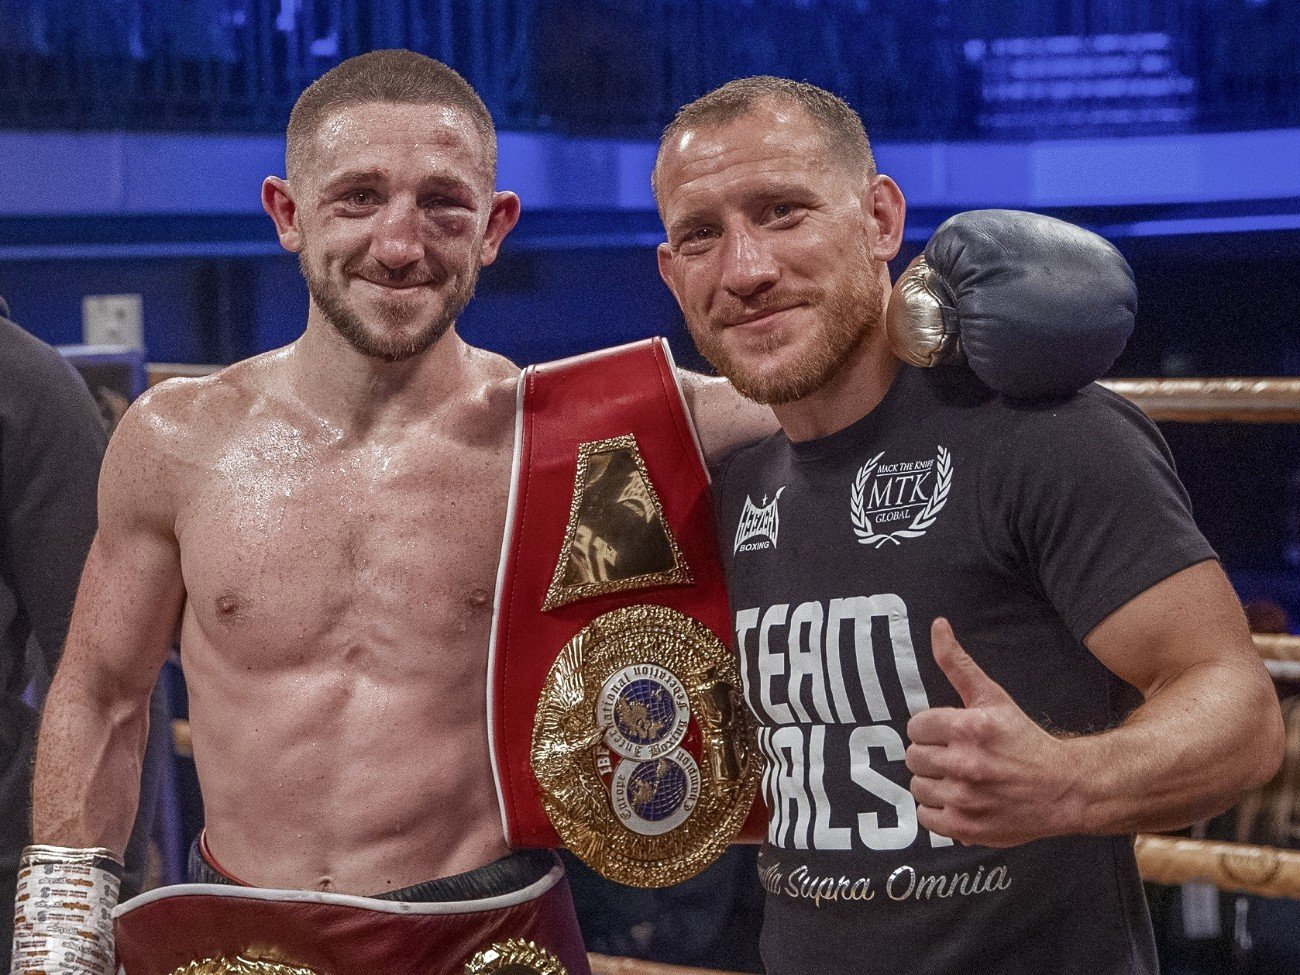 Jazza Dickens, Ryan Walsh - Ryan Walsh knows that his upcoming fight with Jazza Dickens could make or break his career ahead of their #GoldenContract featherweight final showdown later this month.